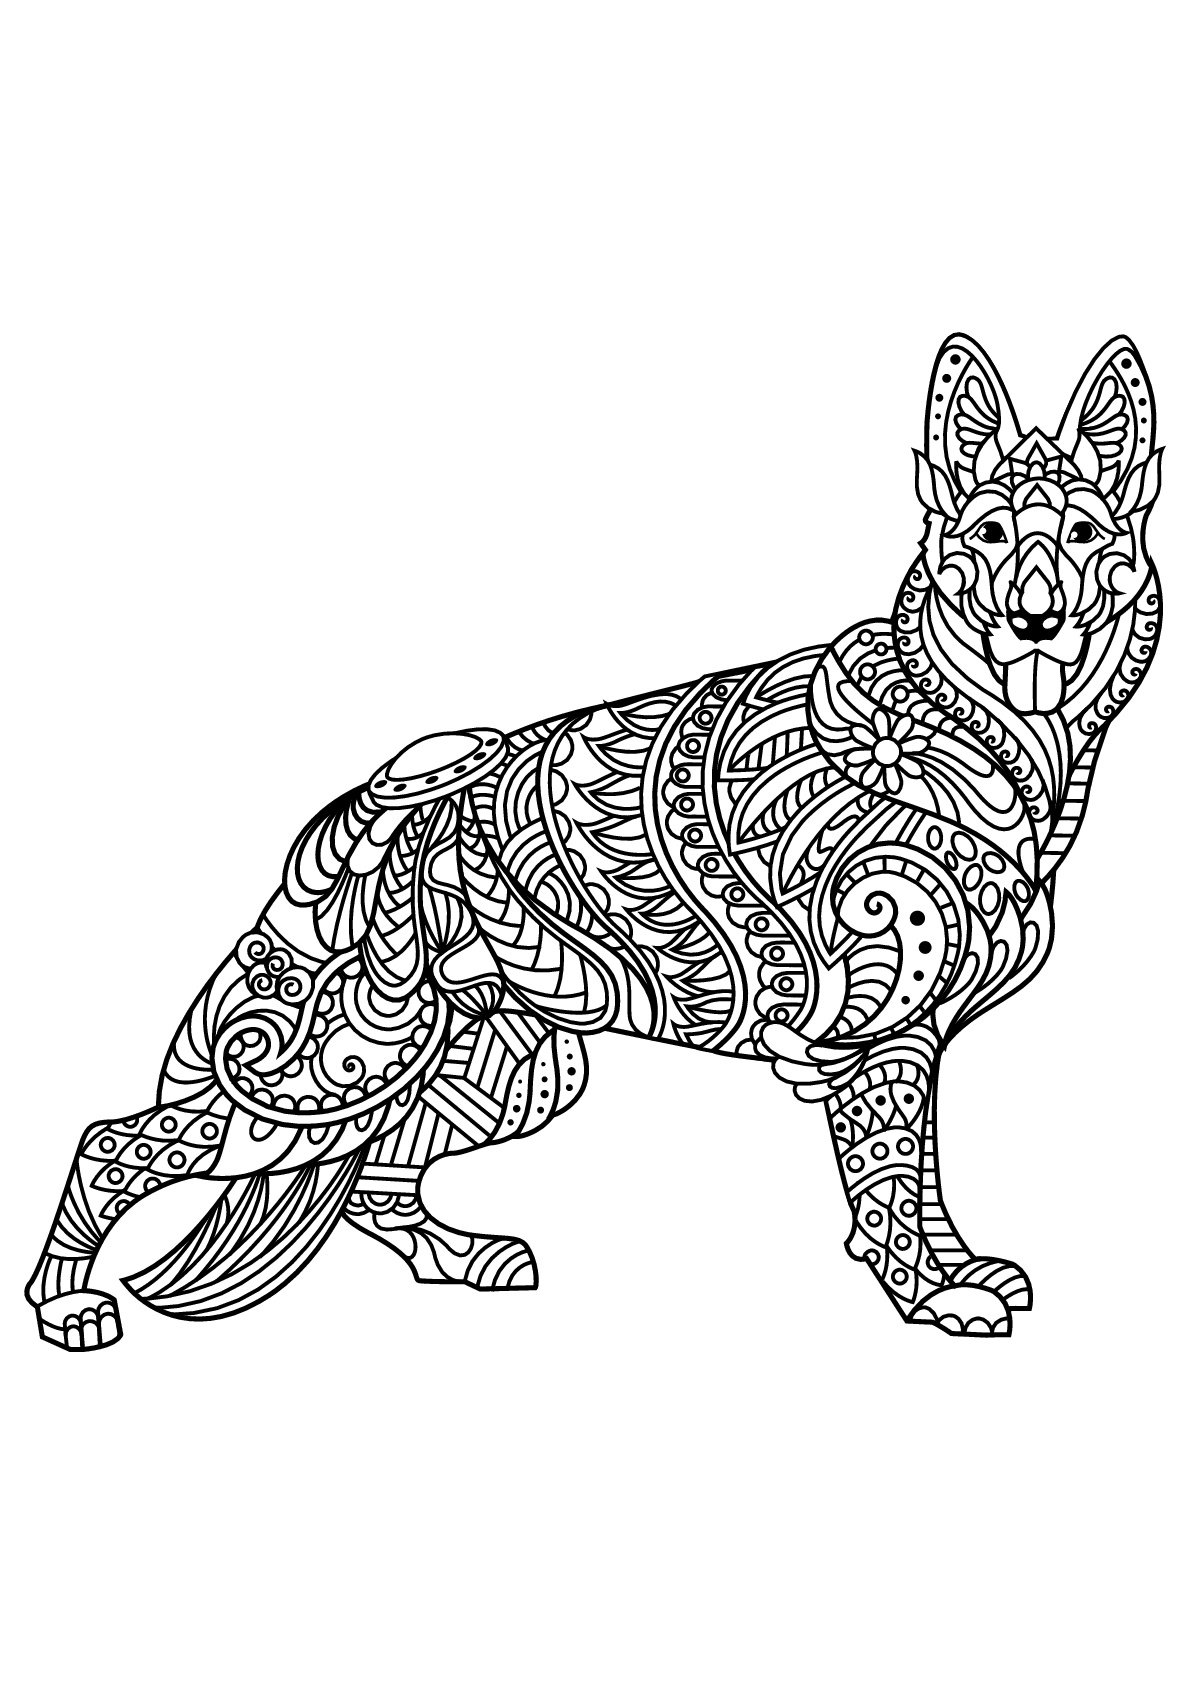 Dog to print - Dogs Kids Coloring Pages